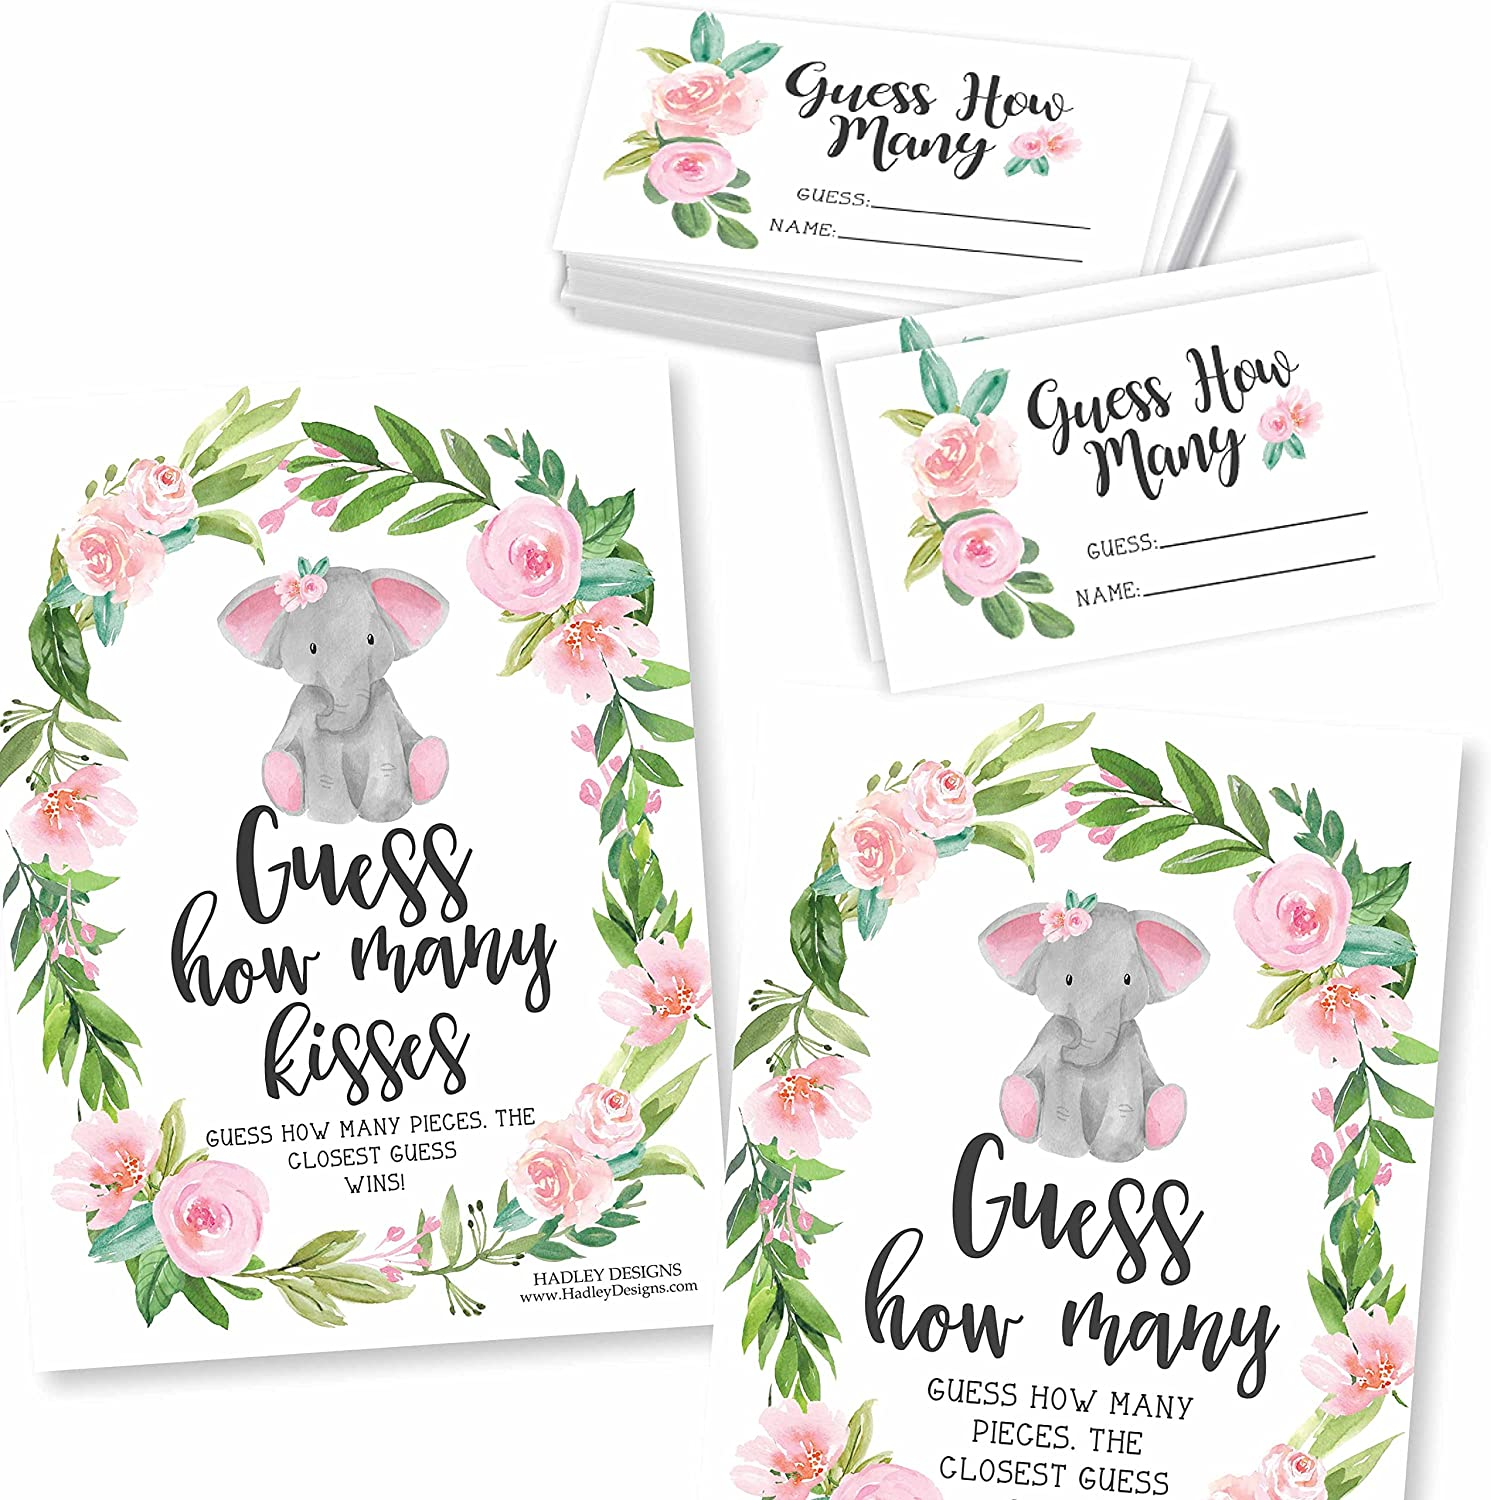 25 Guess How Many Baby Shower Games for Girls - Kids Birthday Party Games For Kids, Guessing Games, Pink Elephant Baby Shower Ideas, Party Games, Guess How Many Kisses Game, Baby Shower Supplies